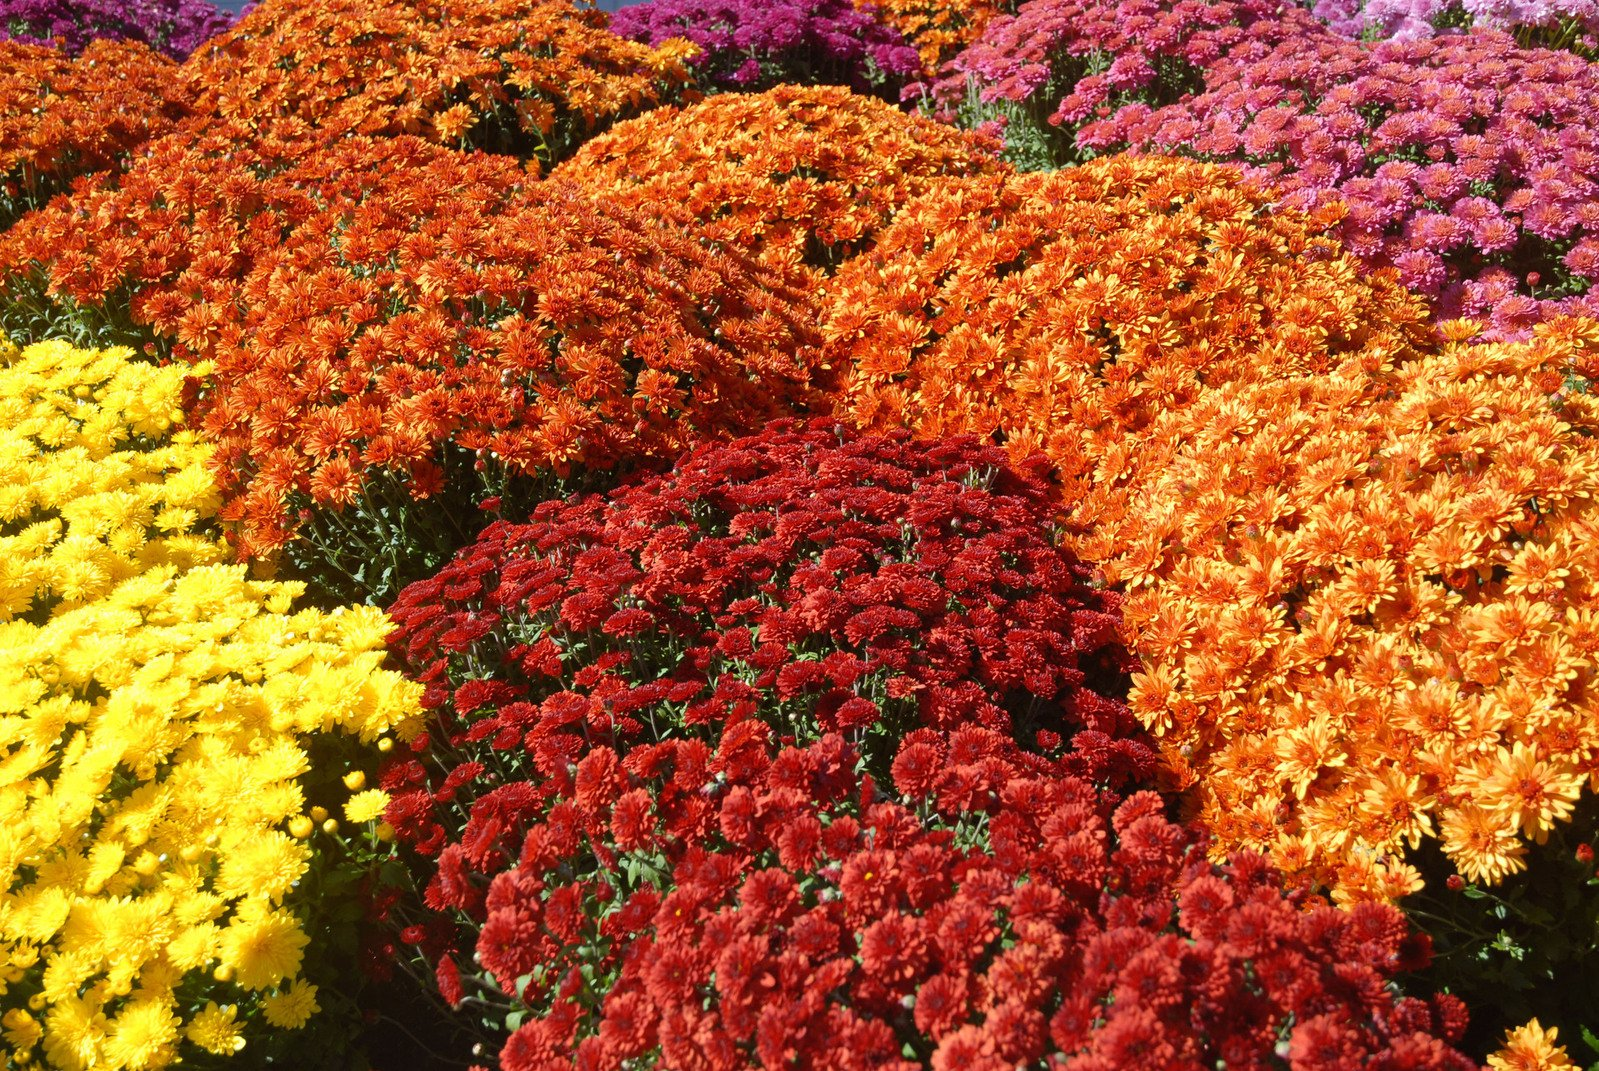 Autumn – the season for mums